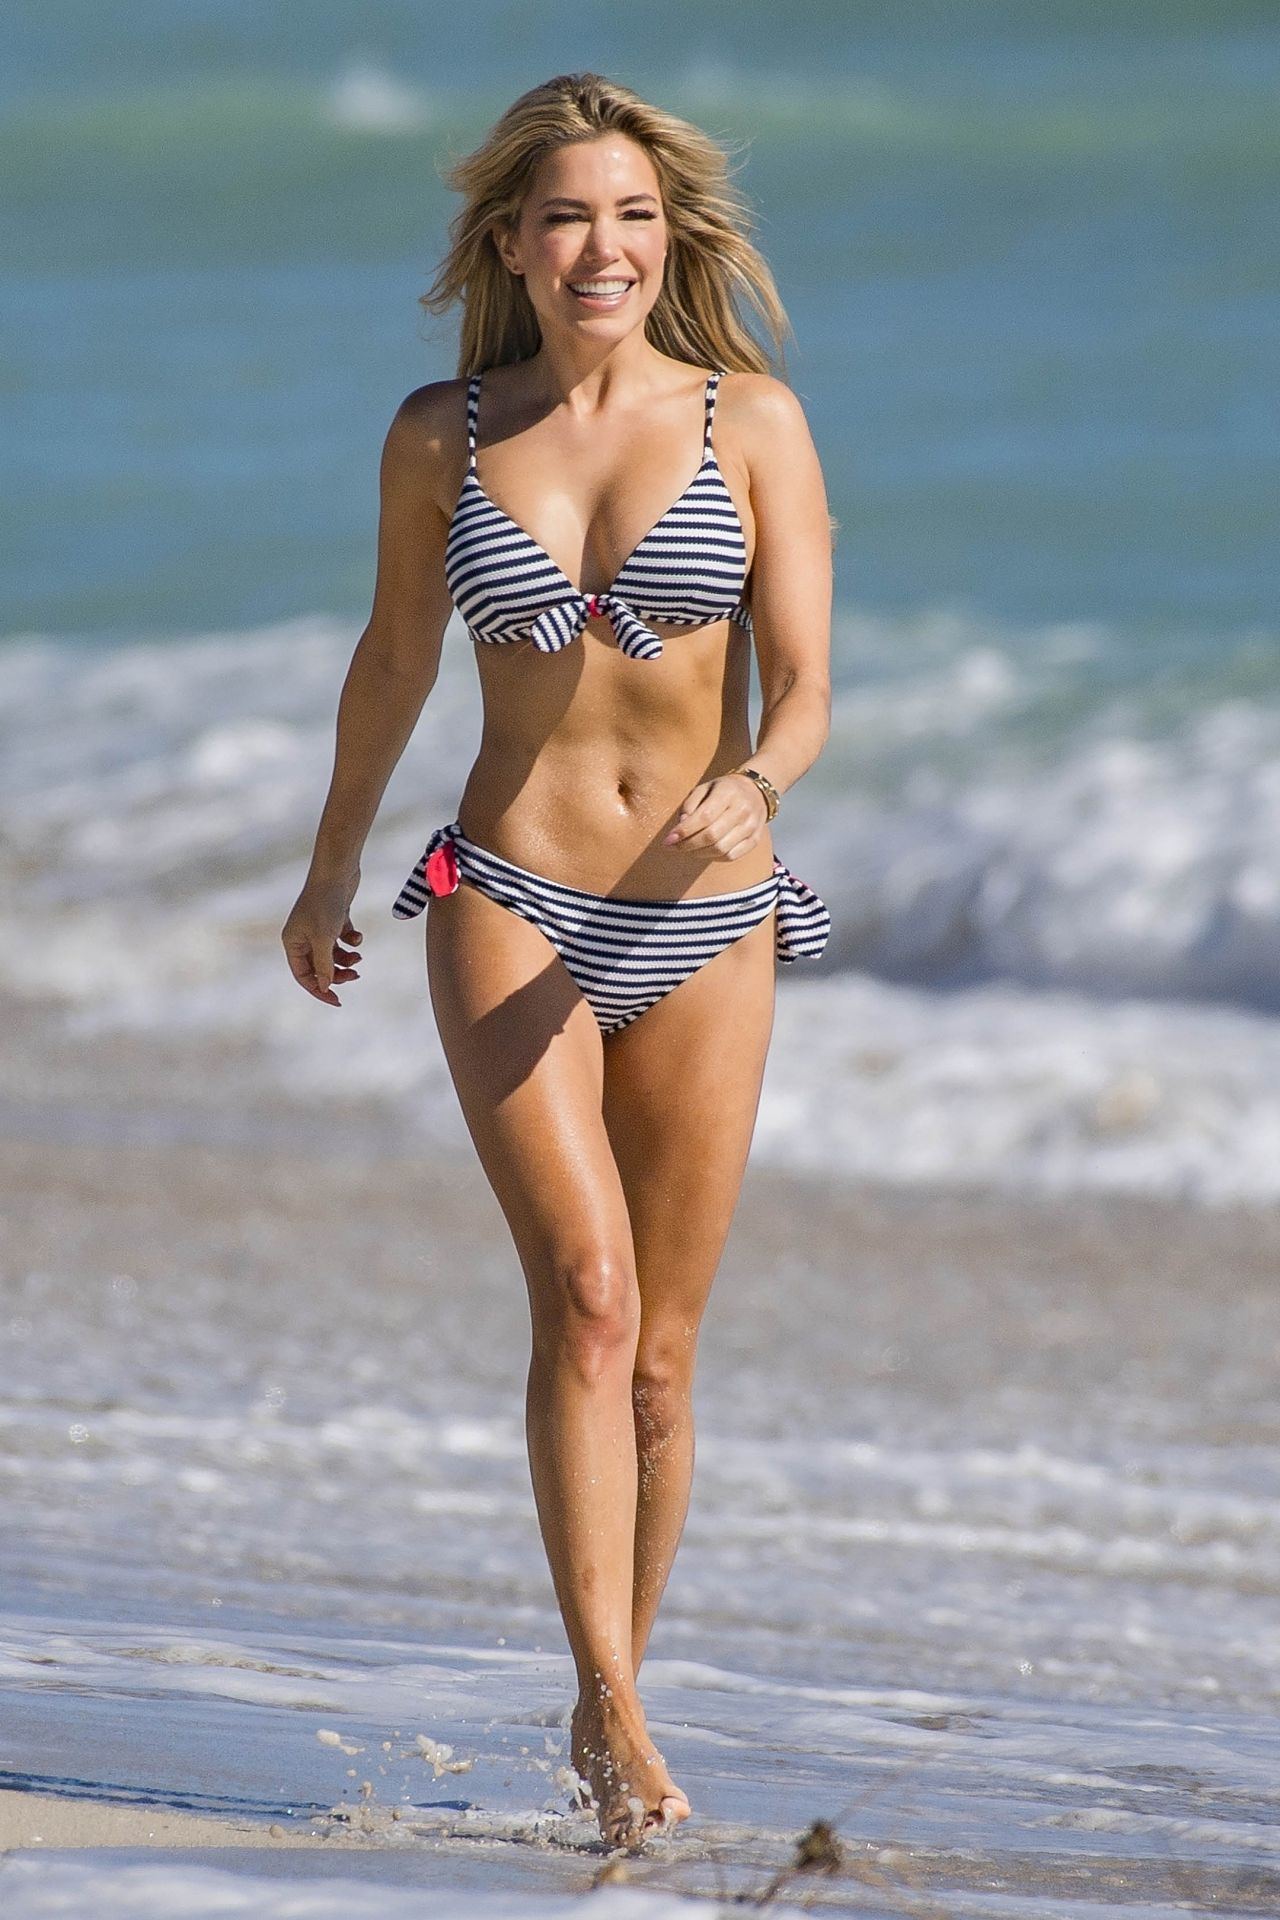 Sylvie Meis in Black Bikini on the beach in Miami Pic 14 of 35